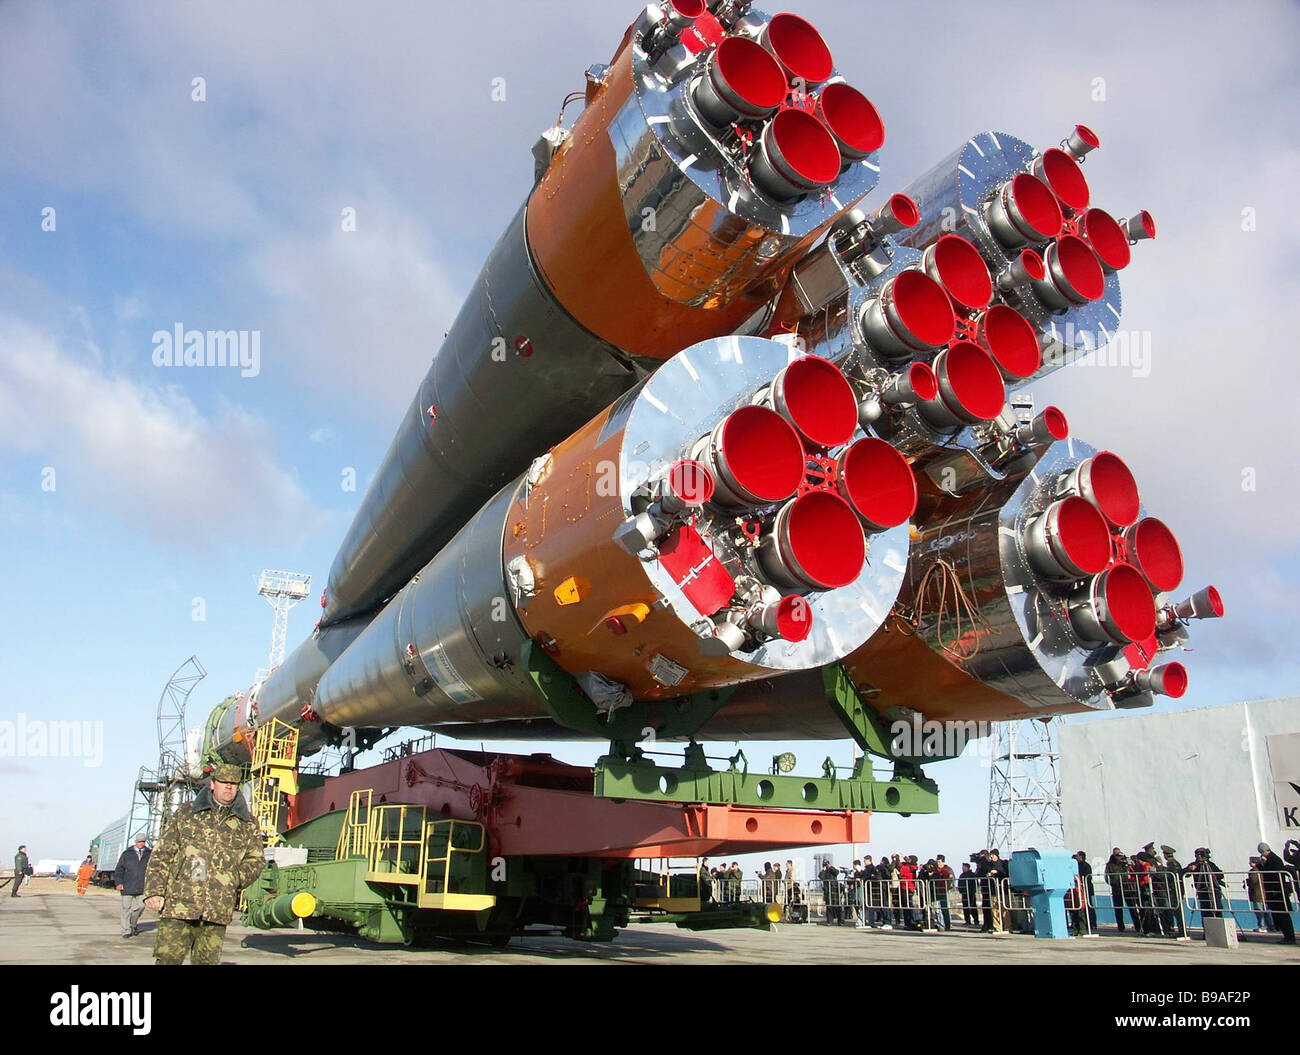 The Soyuz booster carrying the Soyuz TMA 8 spaceship brought to the Baikonur cosmodrome s launch pad The launch - Stock Image